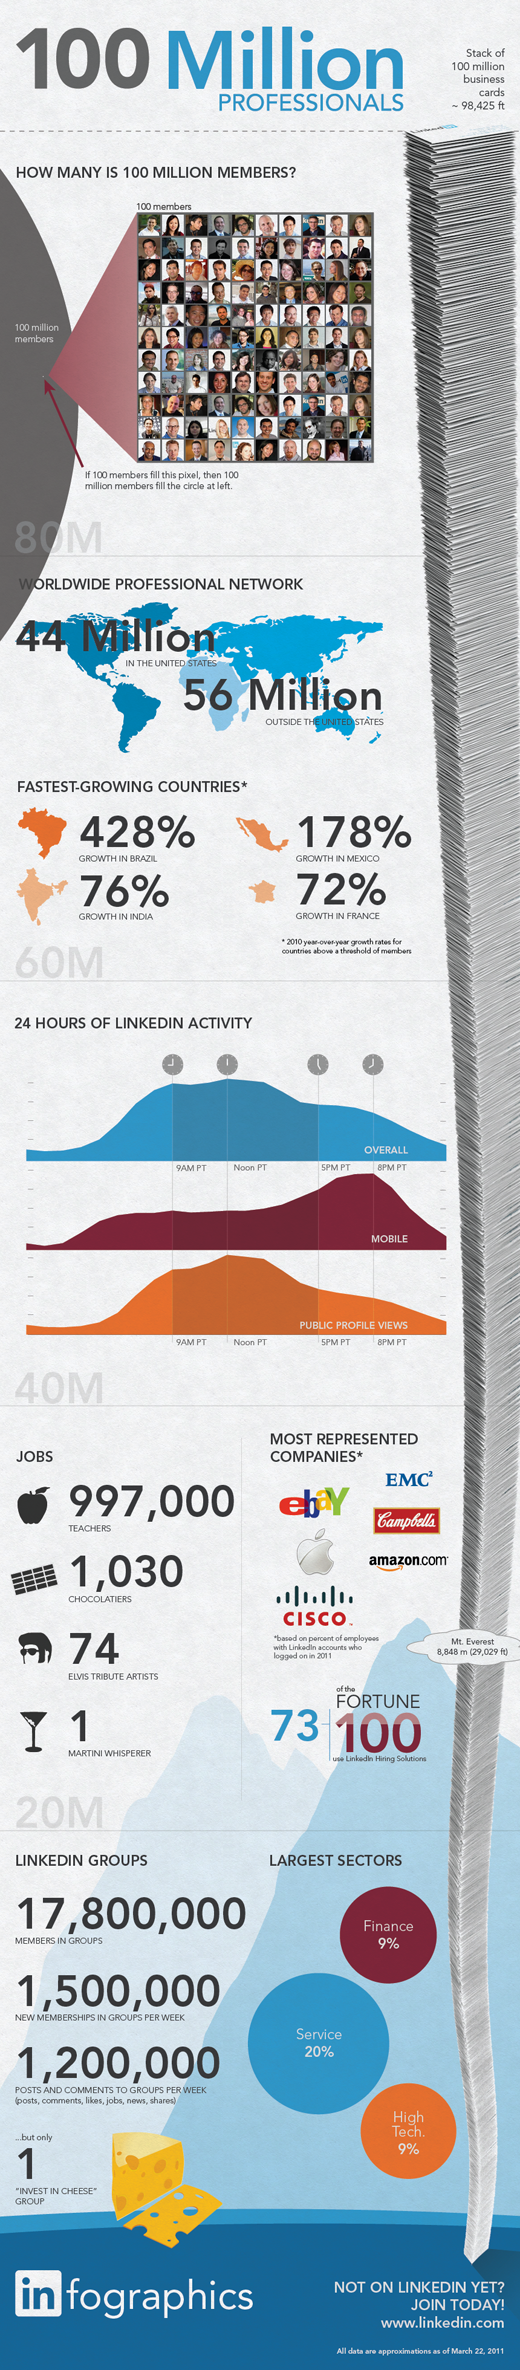 12 Awesome LinkedIn Infographics in 2011